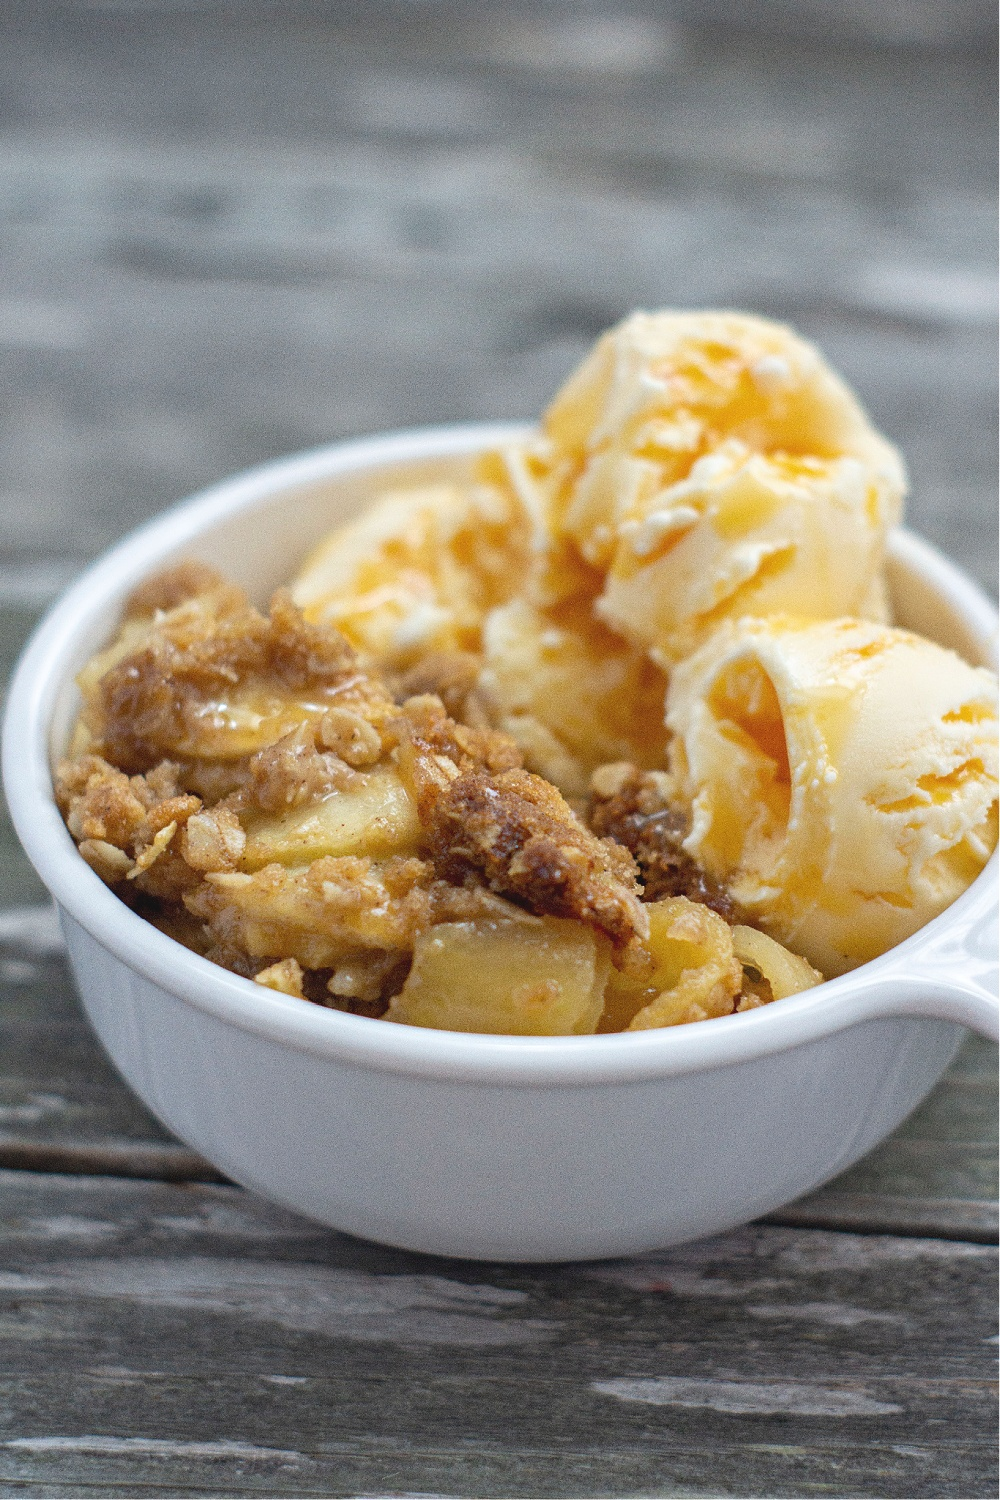 Old Fashioned Apple Crisp with Oats